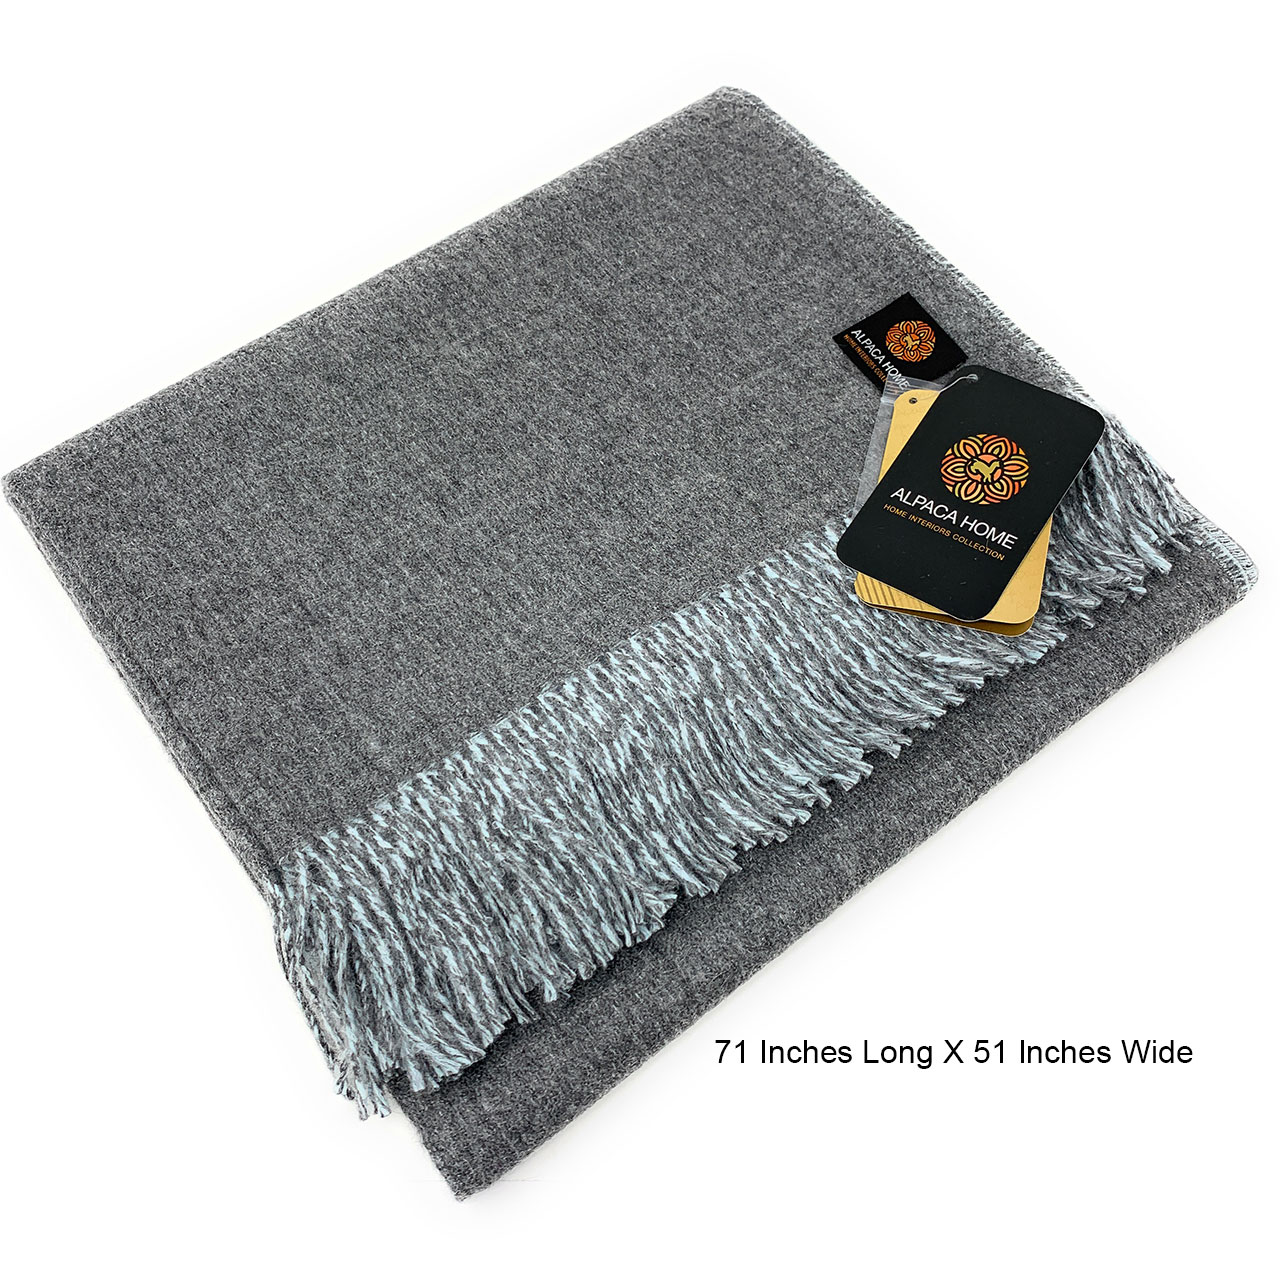 100% Baby Alpaca Wool, Reversible Two Sided Throw Blanket Graystone / Pale Blue folded showing size